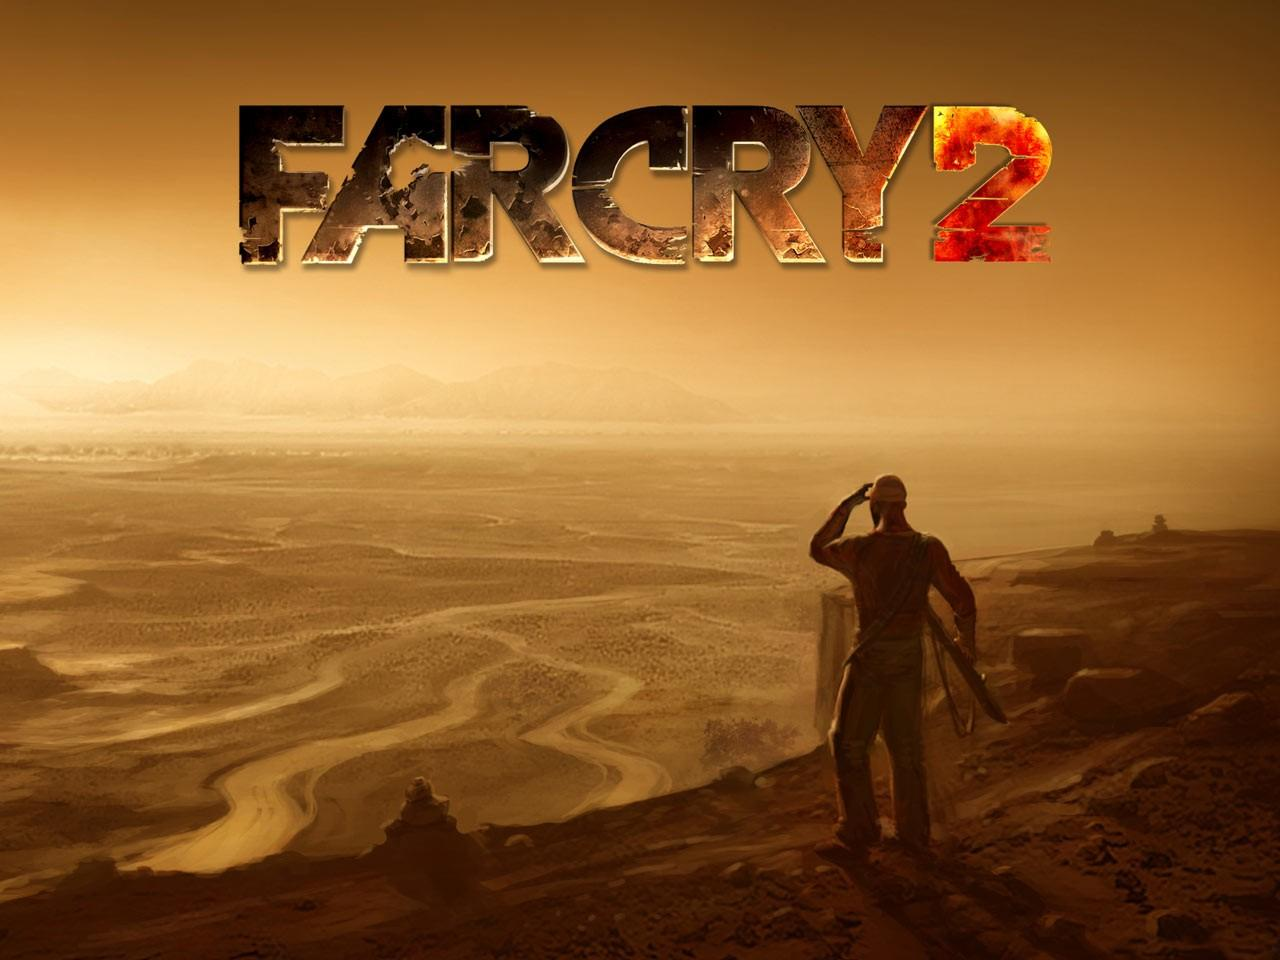 Mavis Fitzpatrick: far cry 2 background